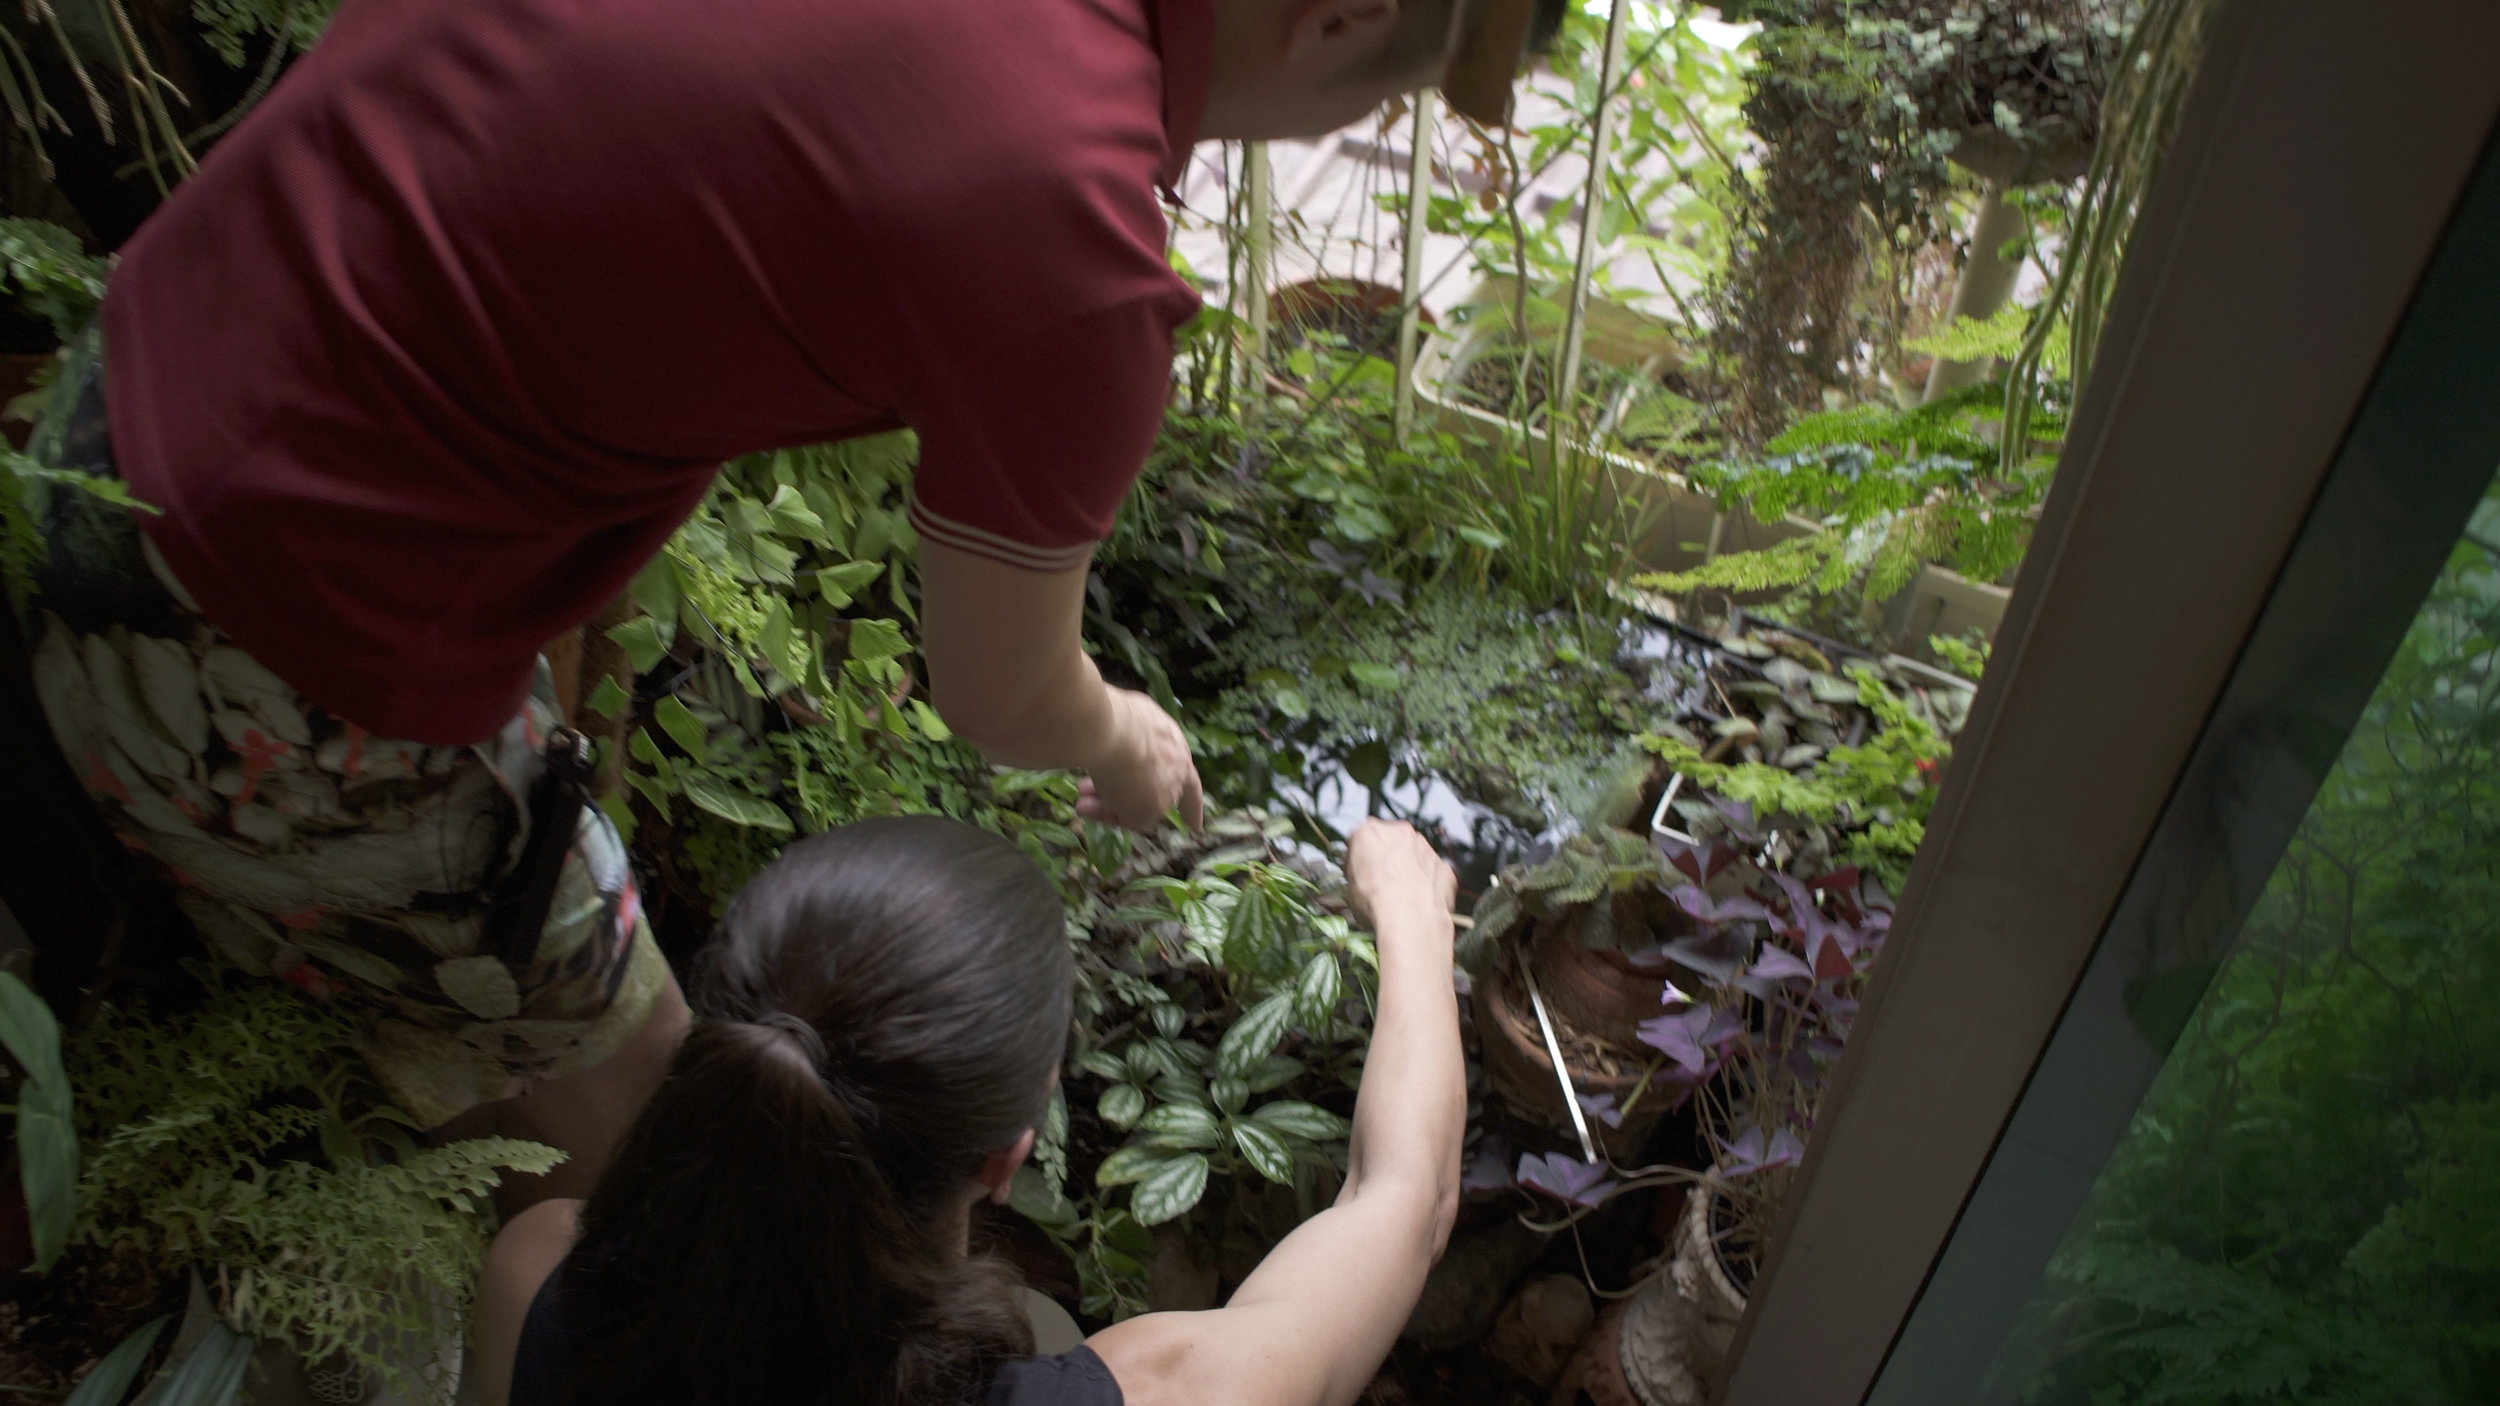 James installed a pond in his garden, which ultimately gave him the ability to grow more humid-loving plants like  Adiantum  and  Huperzia .